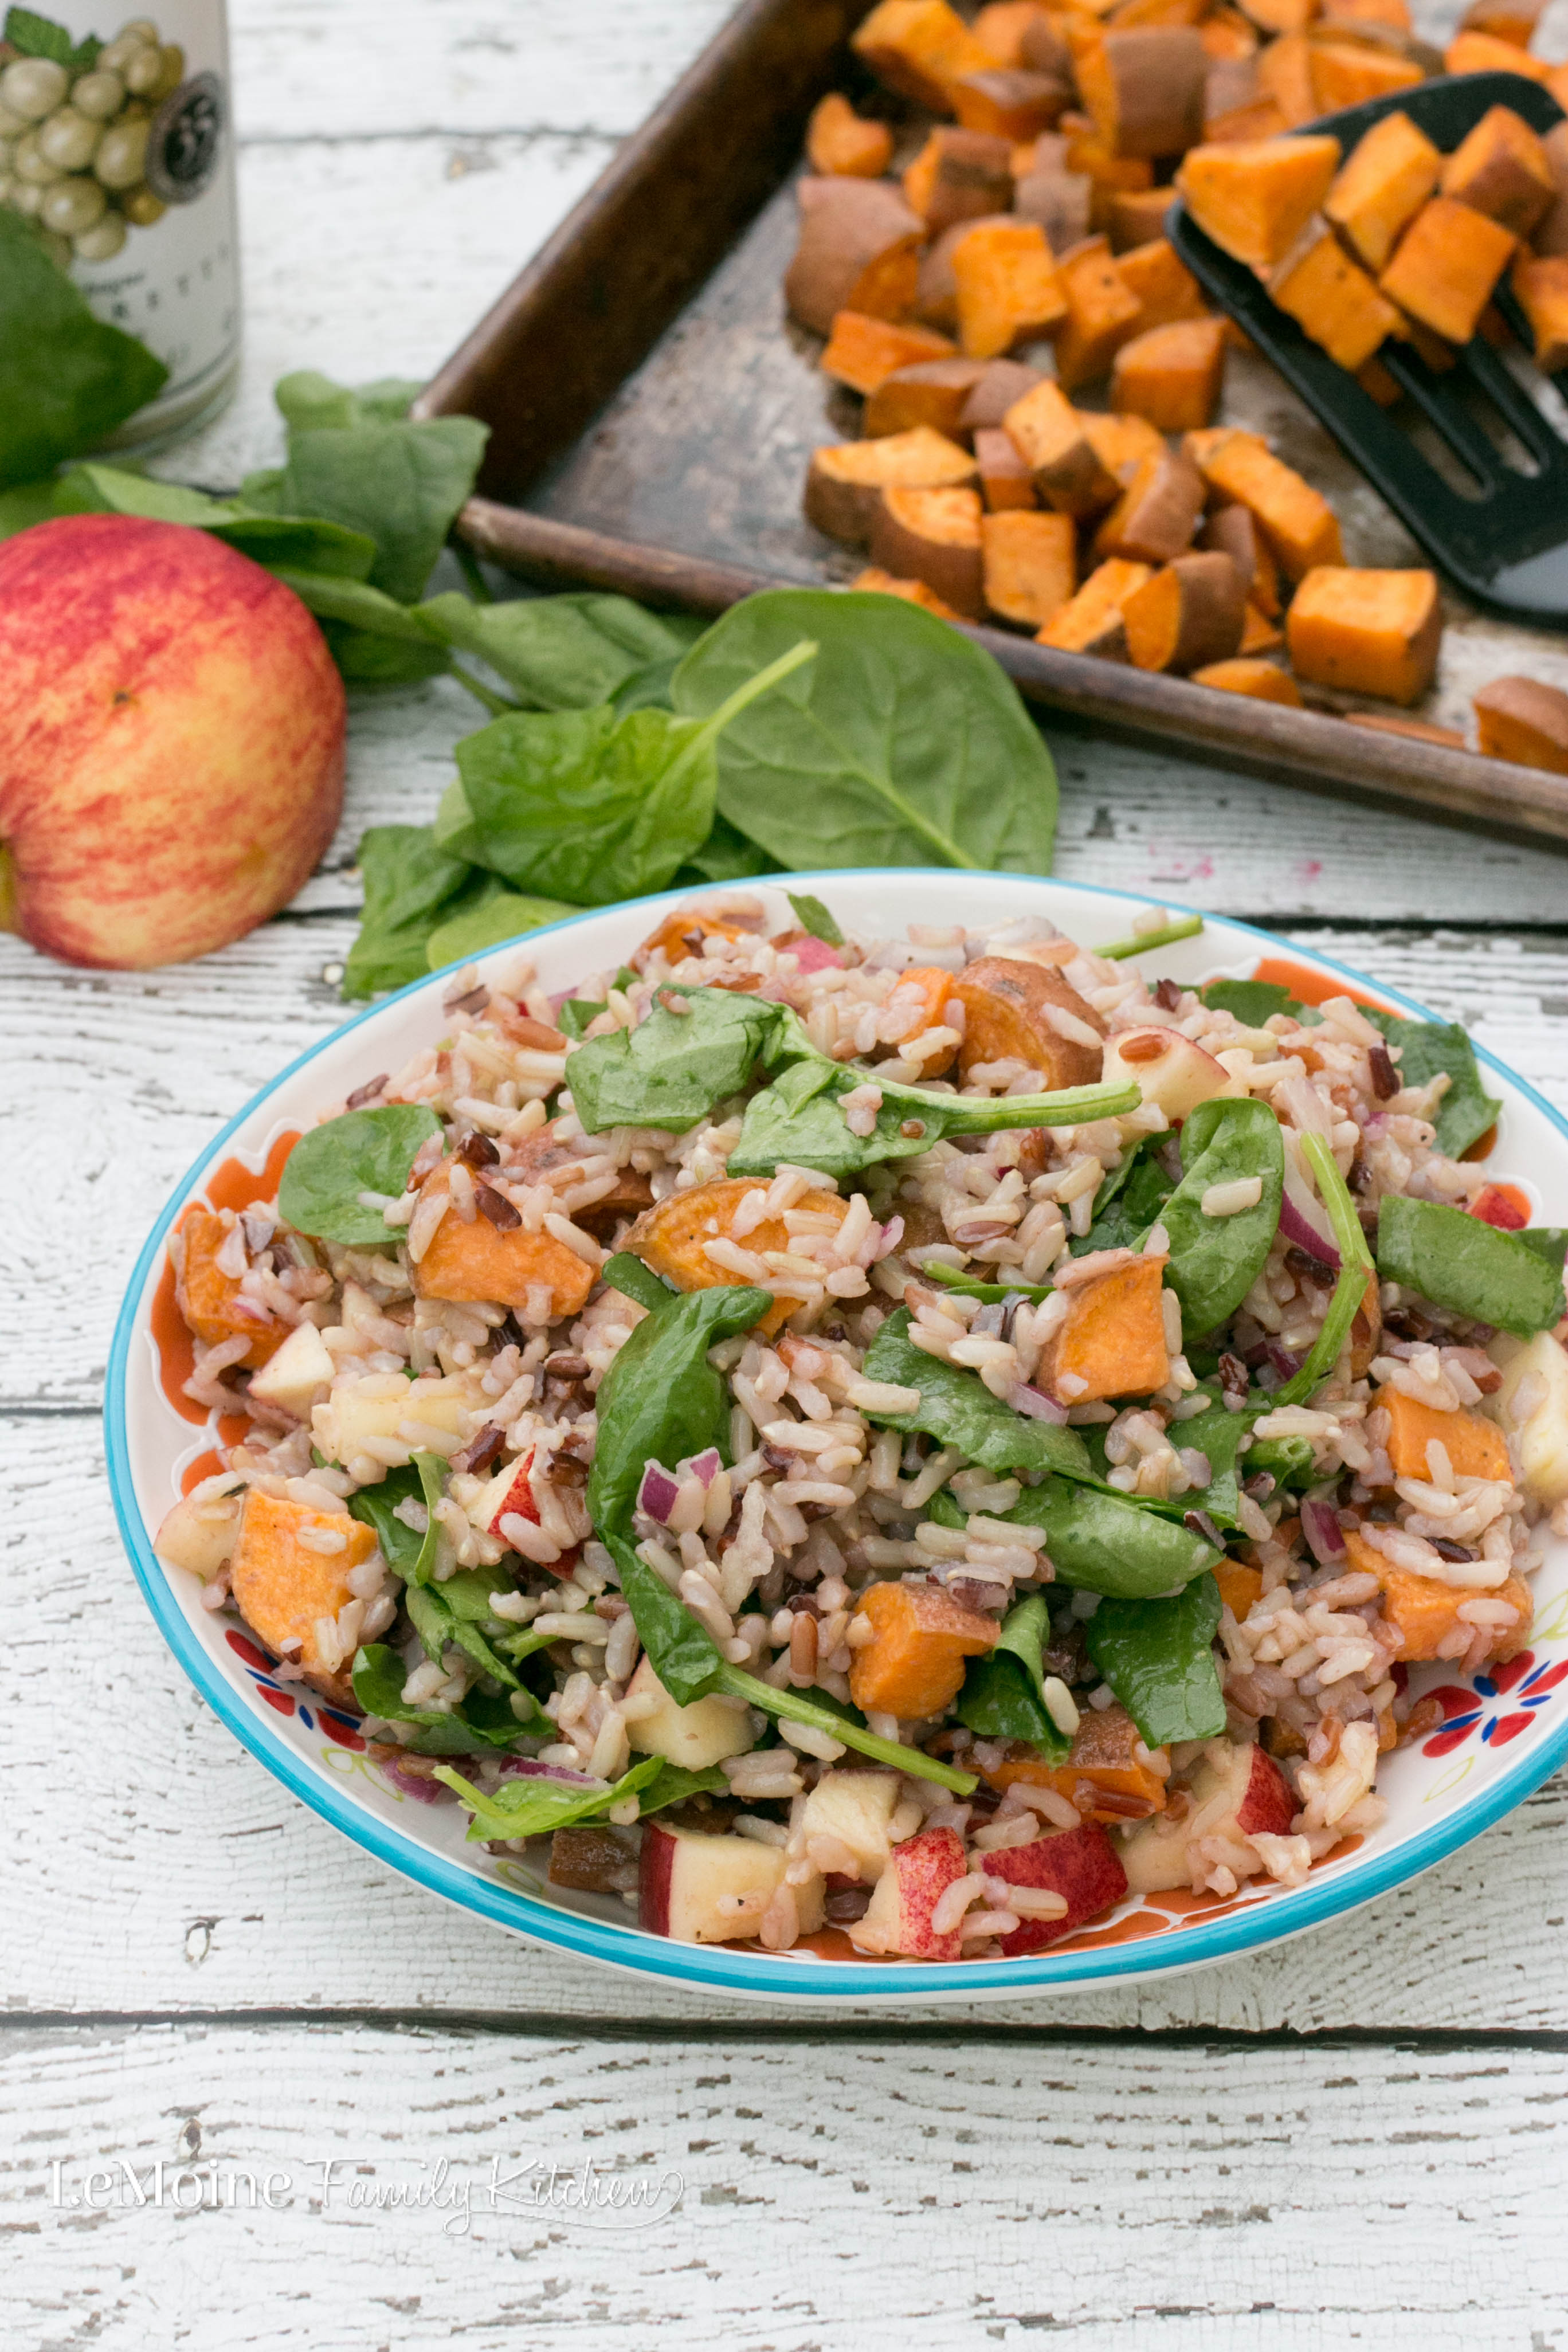 My Fall inspired Wild Rice Salad with Sweet Potato, Spinach & Apple has such a wonderful combination of flavors and textures. Pretty darn lovely to look at too with the great colors of the sweet potato, spinach and apple. This is light, healthy and so easy to make!